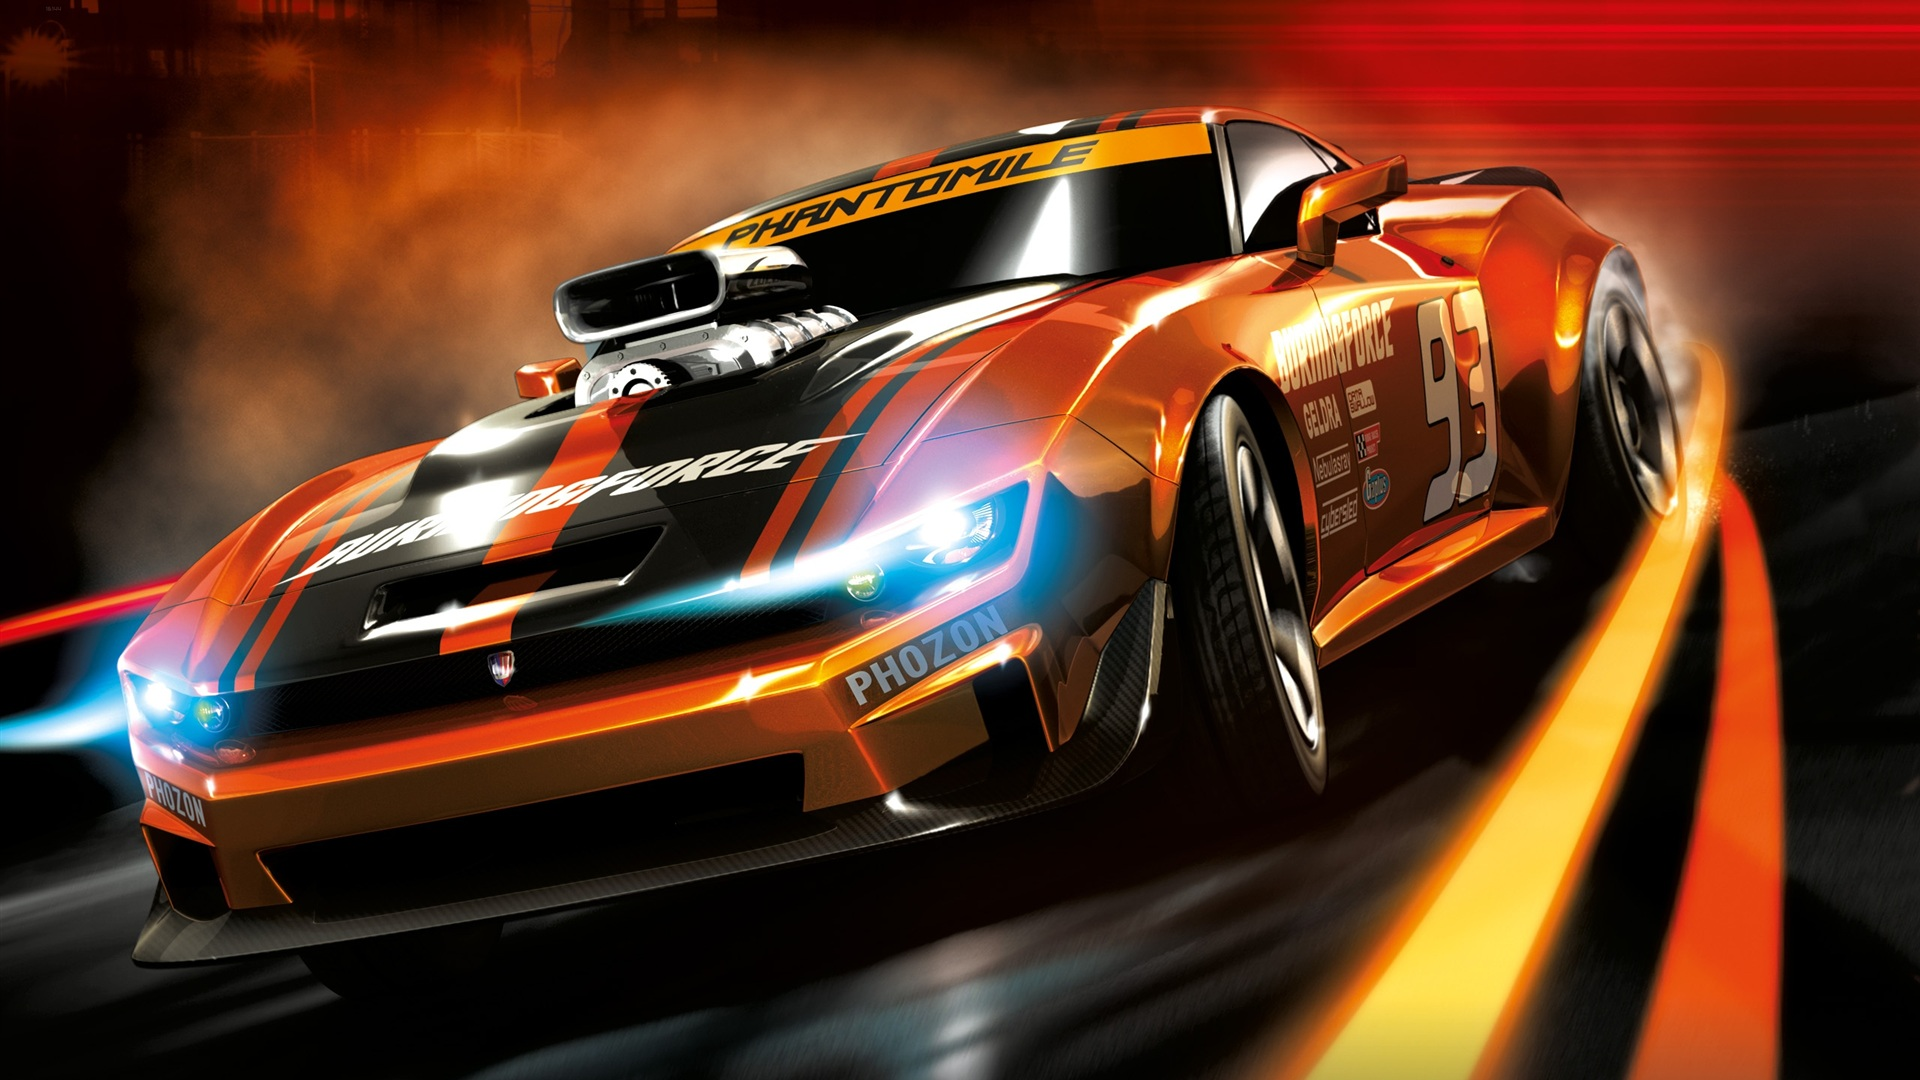 Обои 3d ridge racer hd обои 1920x1080 описание 3d